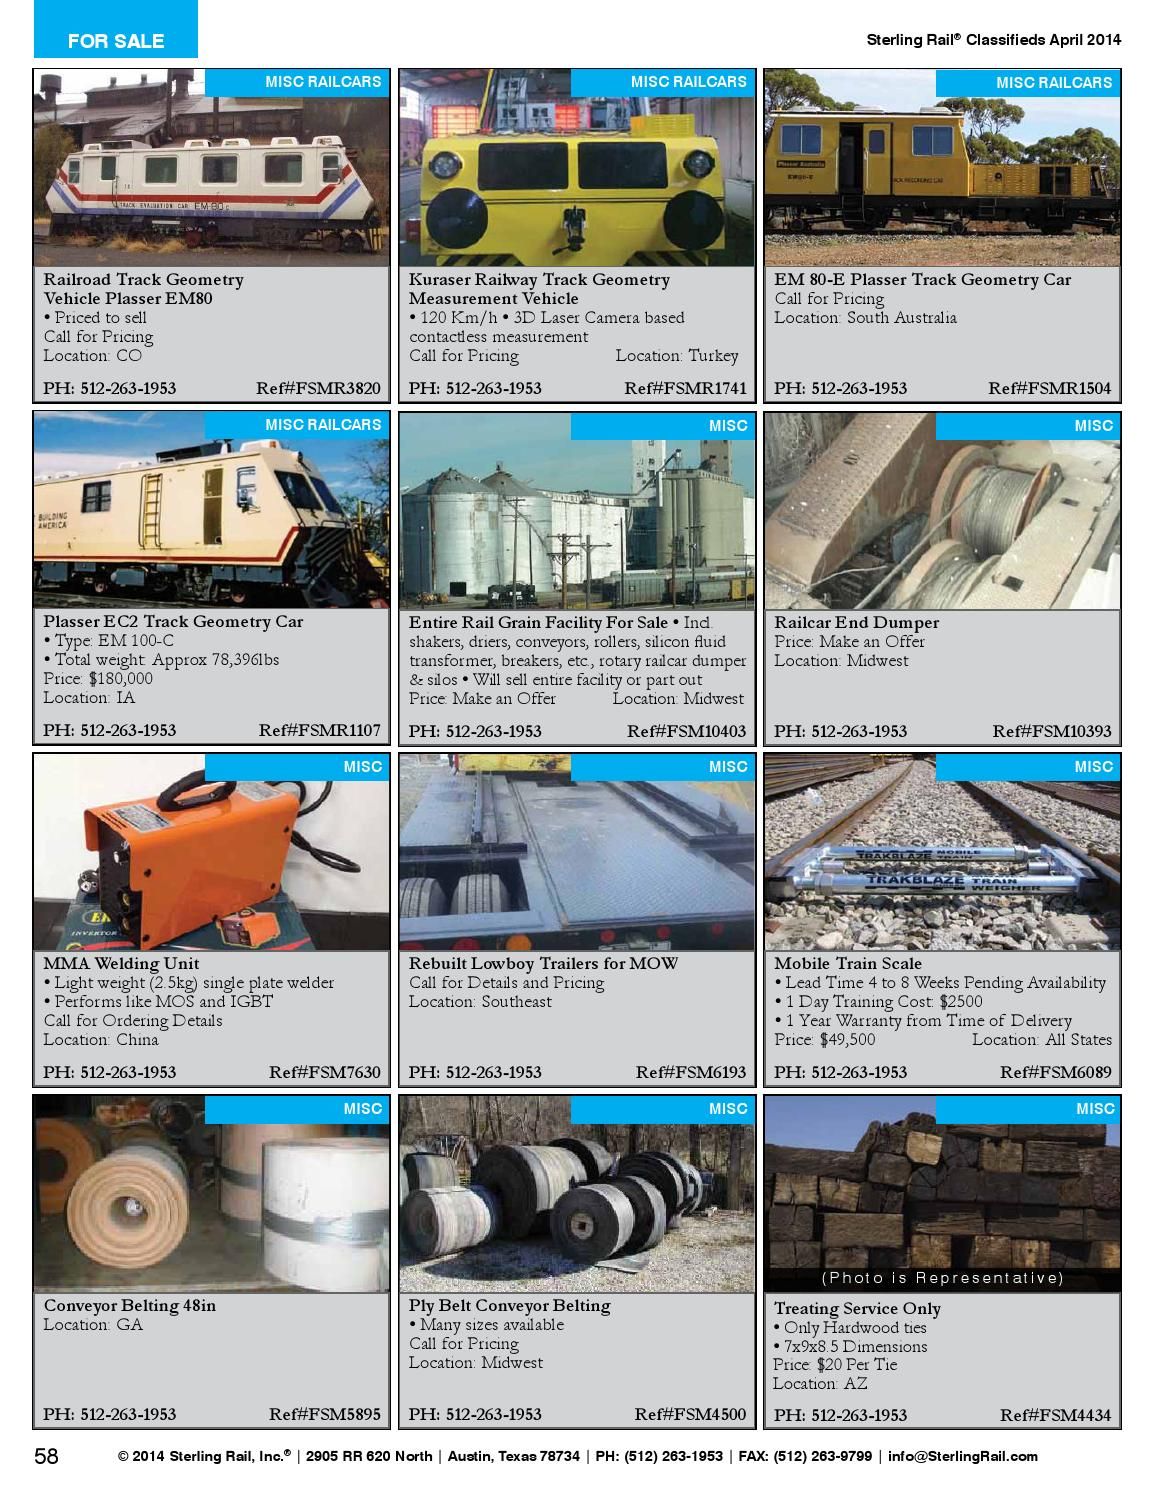 Sterling Rail Classifieds April 2014 Issue by Sterling Rail, Inc